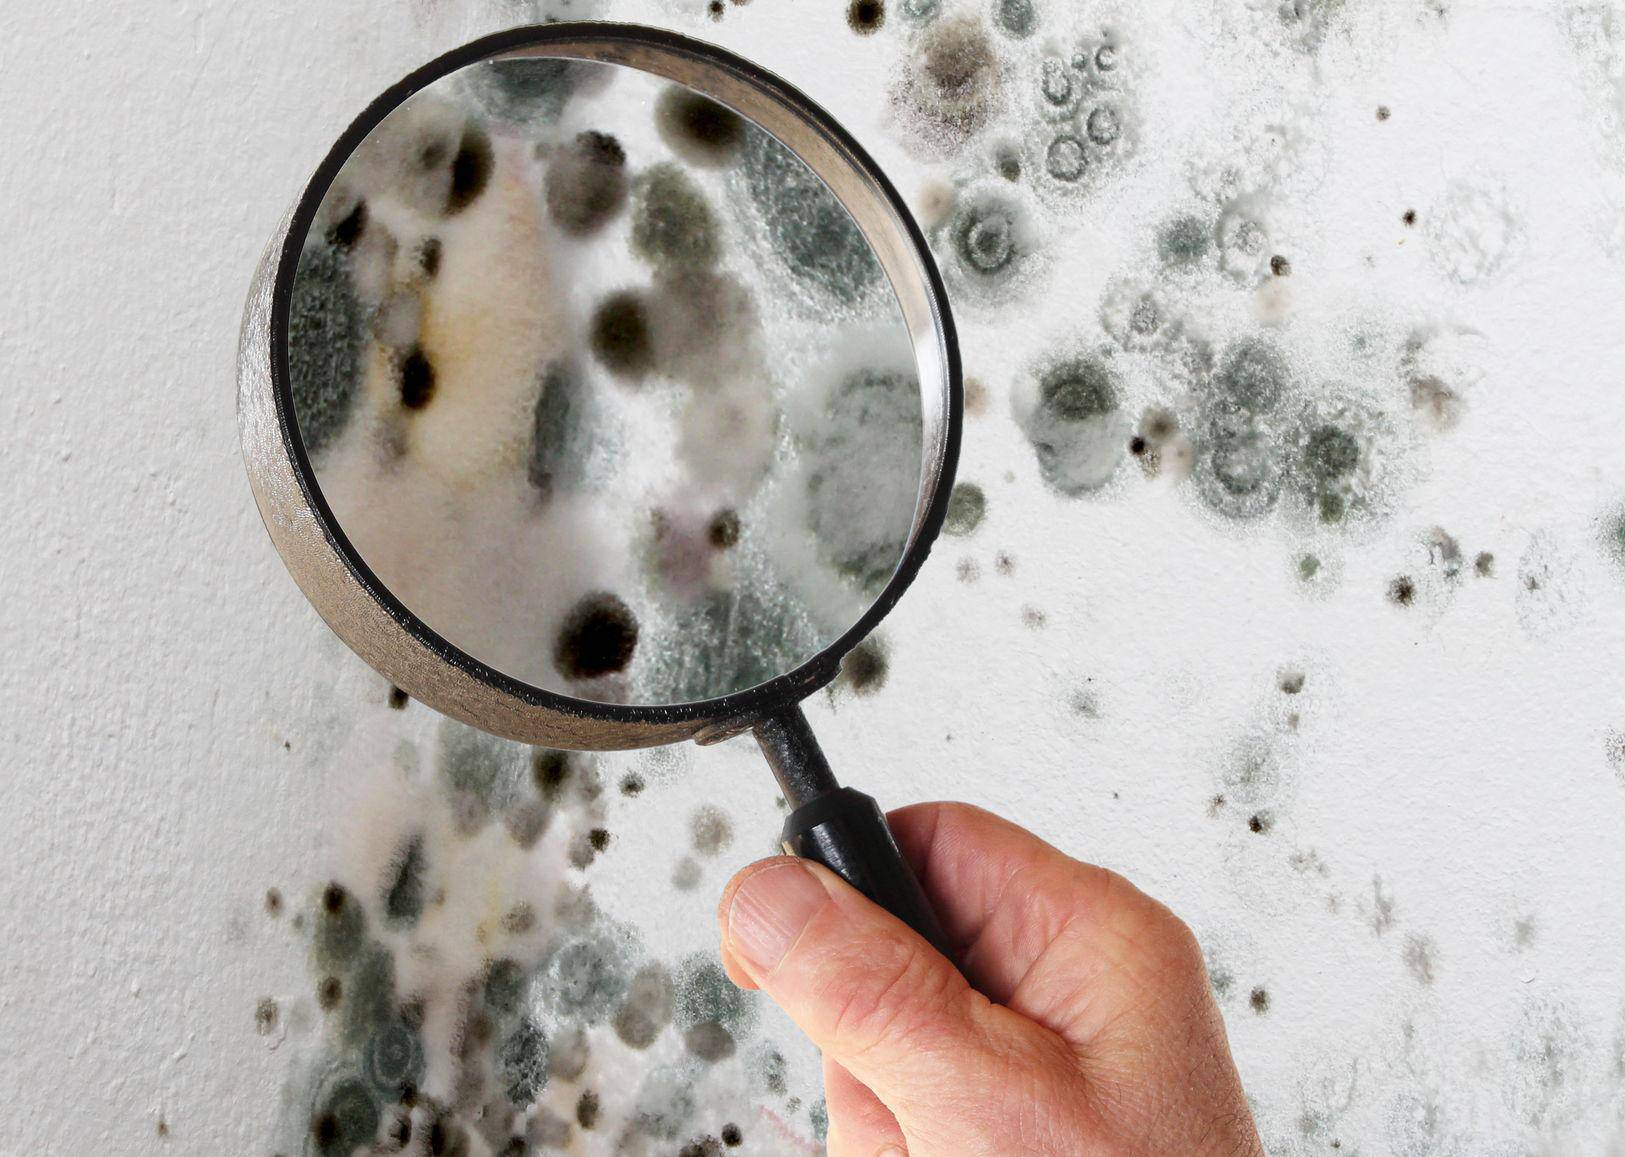 Man with magnifying glass checking mold fungus